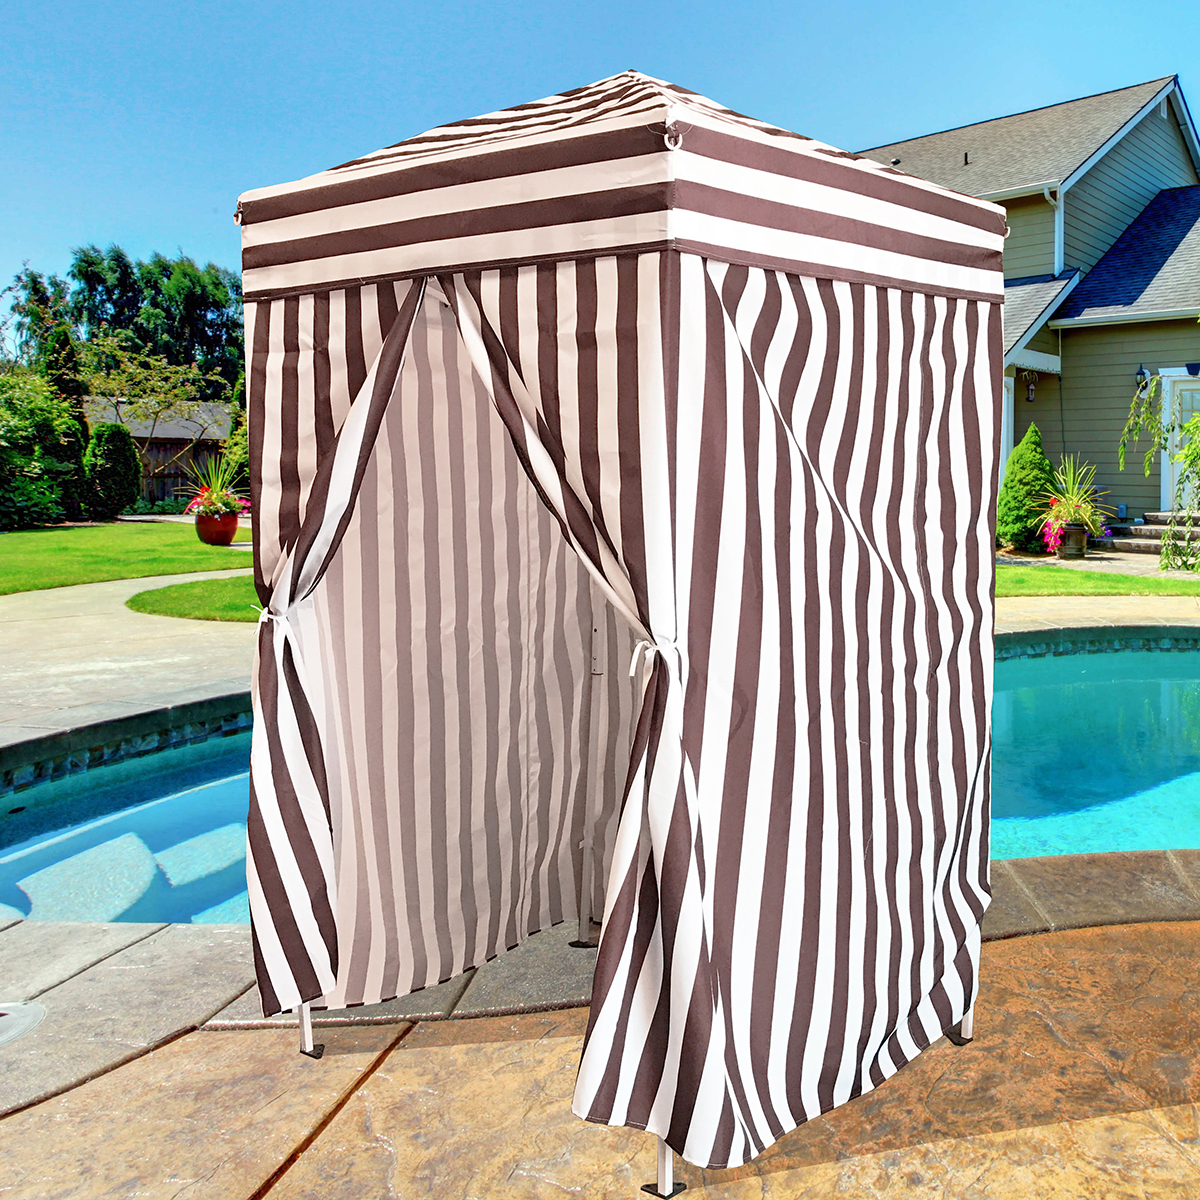 Outdoor Changing Cabana : Changing shower cabana stripe beach privacy tent pool